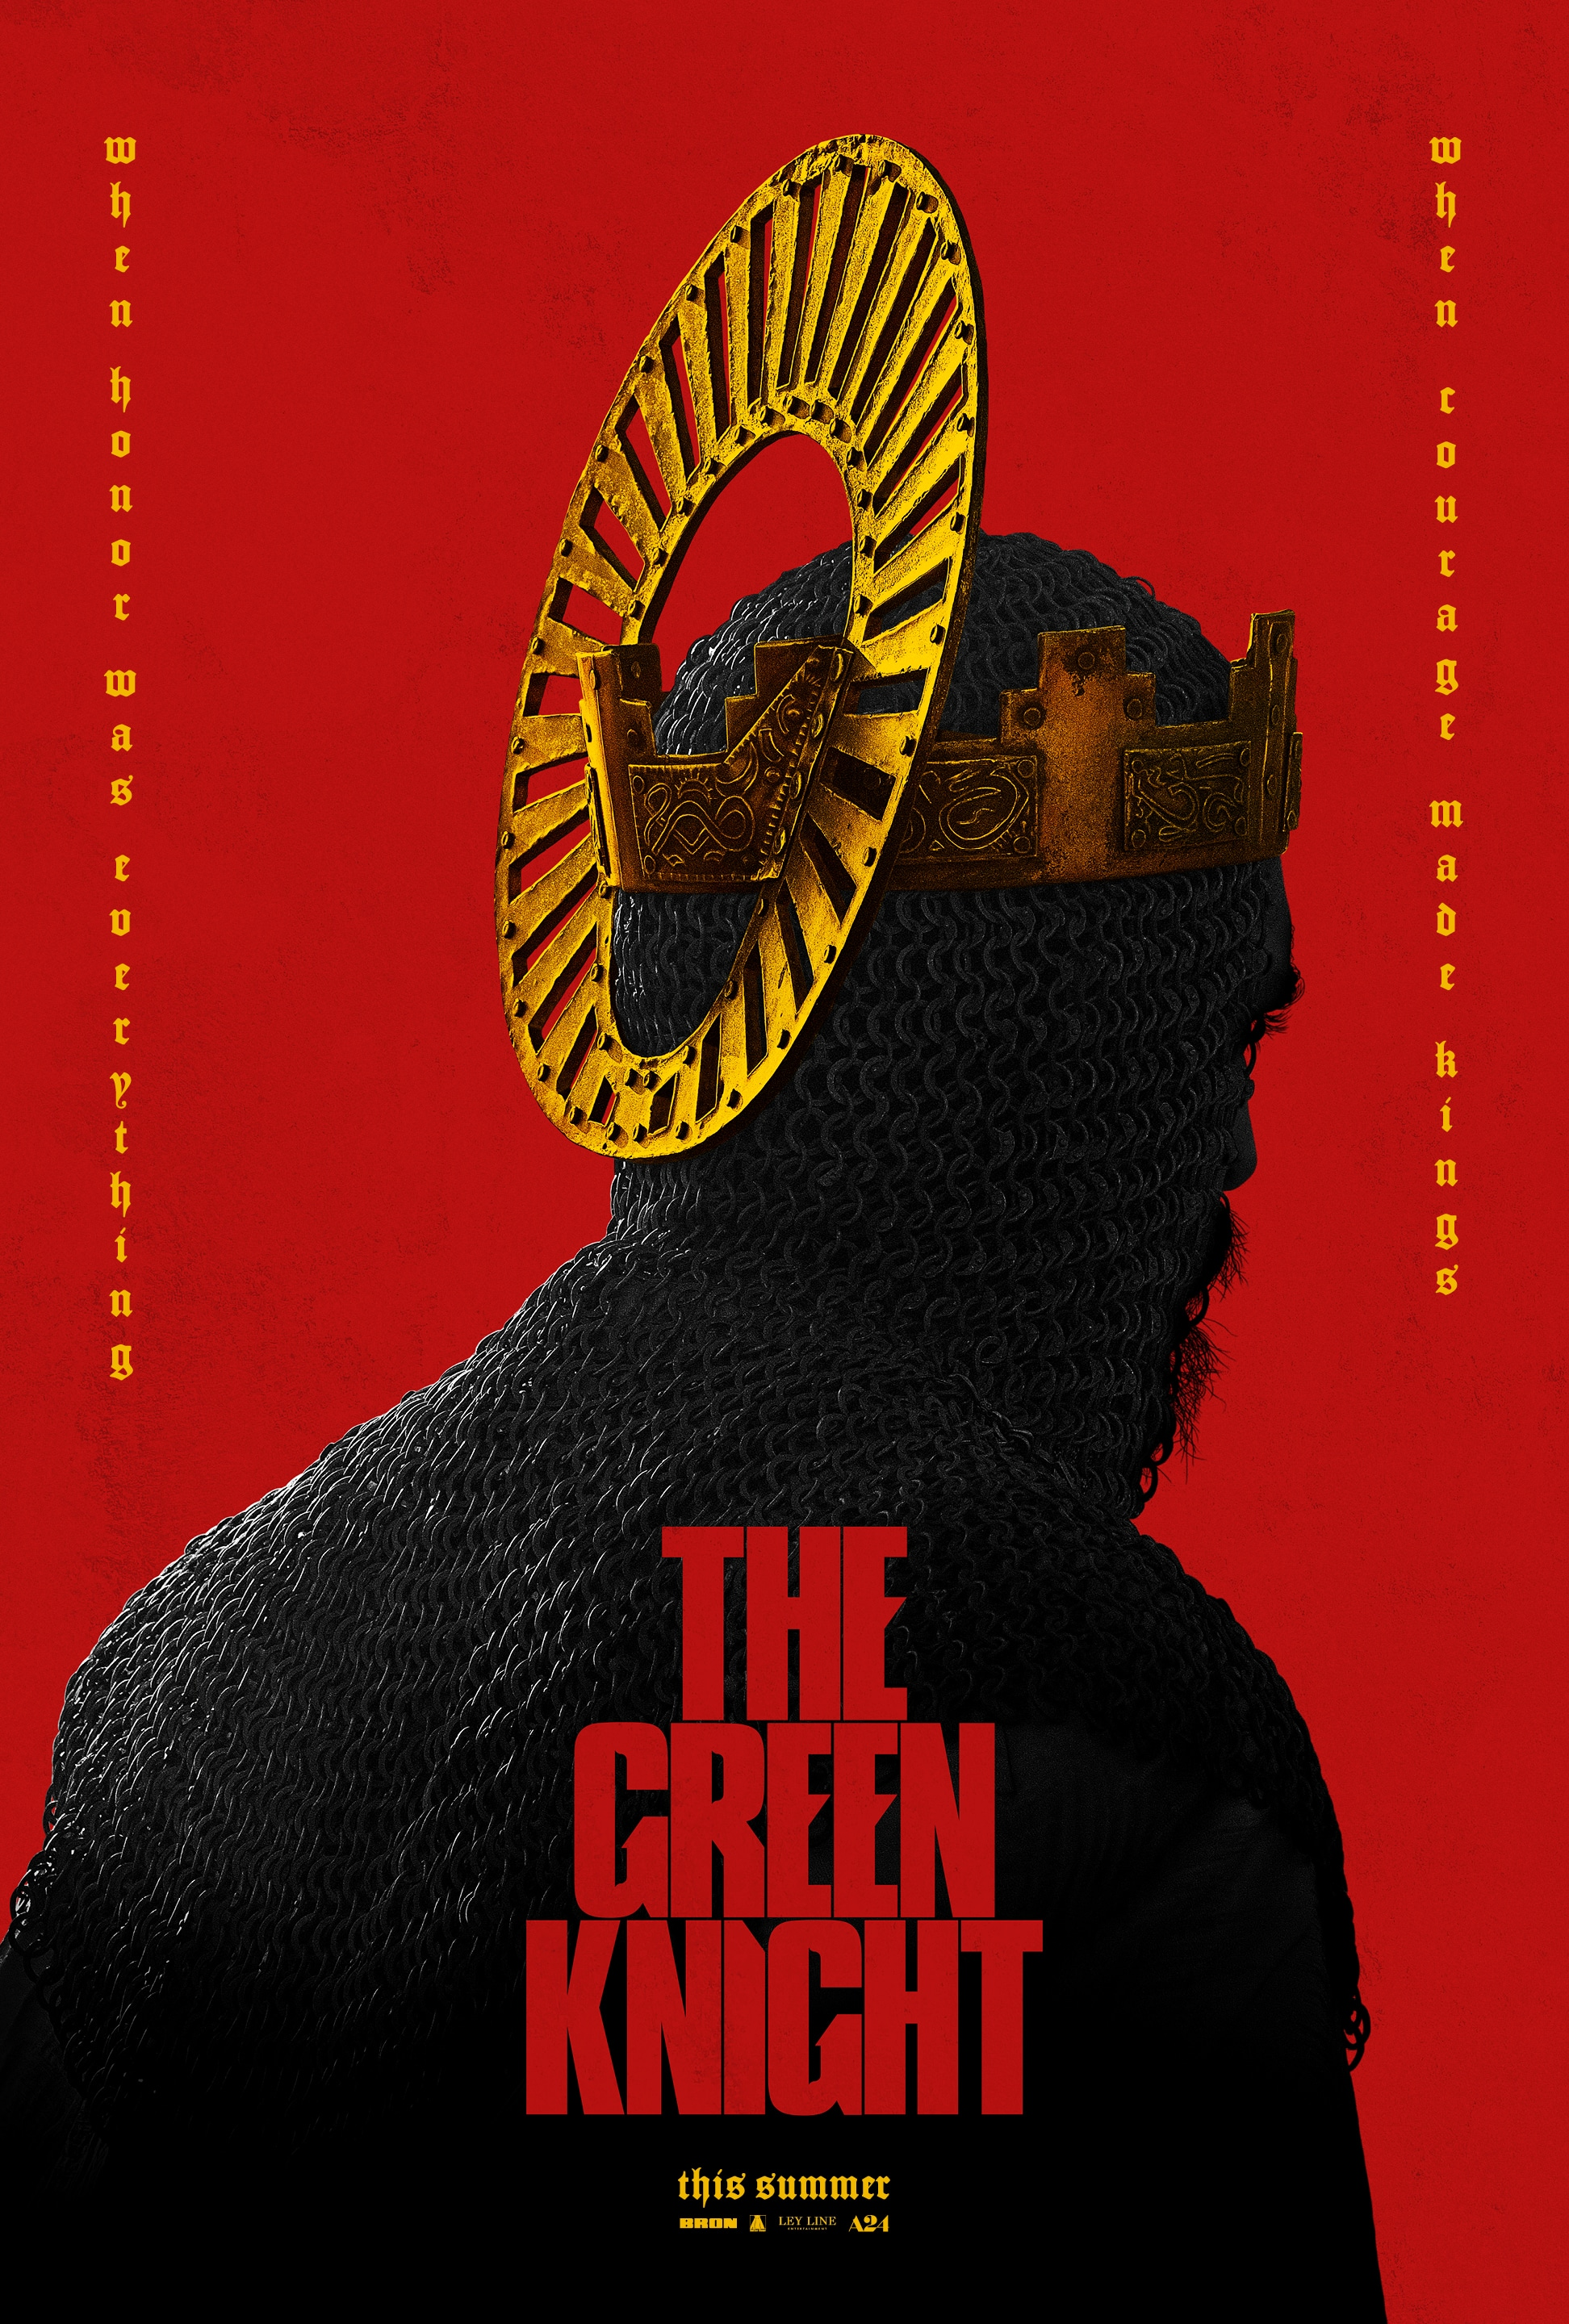 The Green Knight Movie Gets a R Rating to Go with its Trippiness